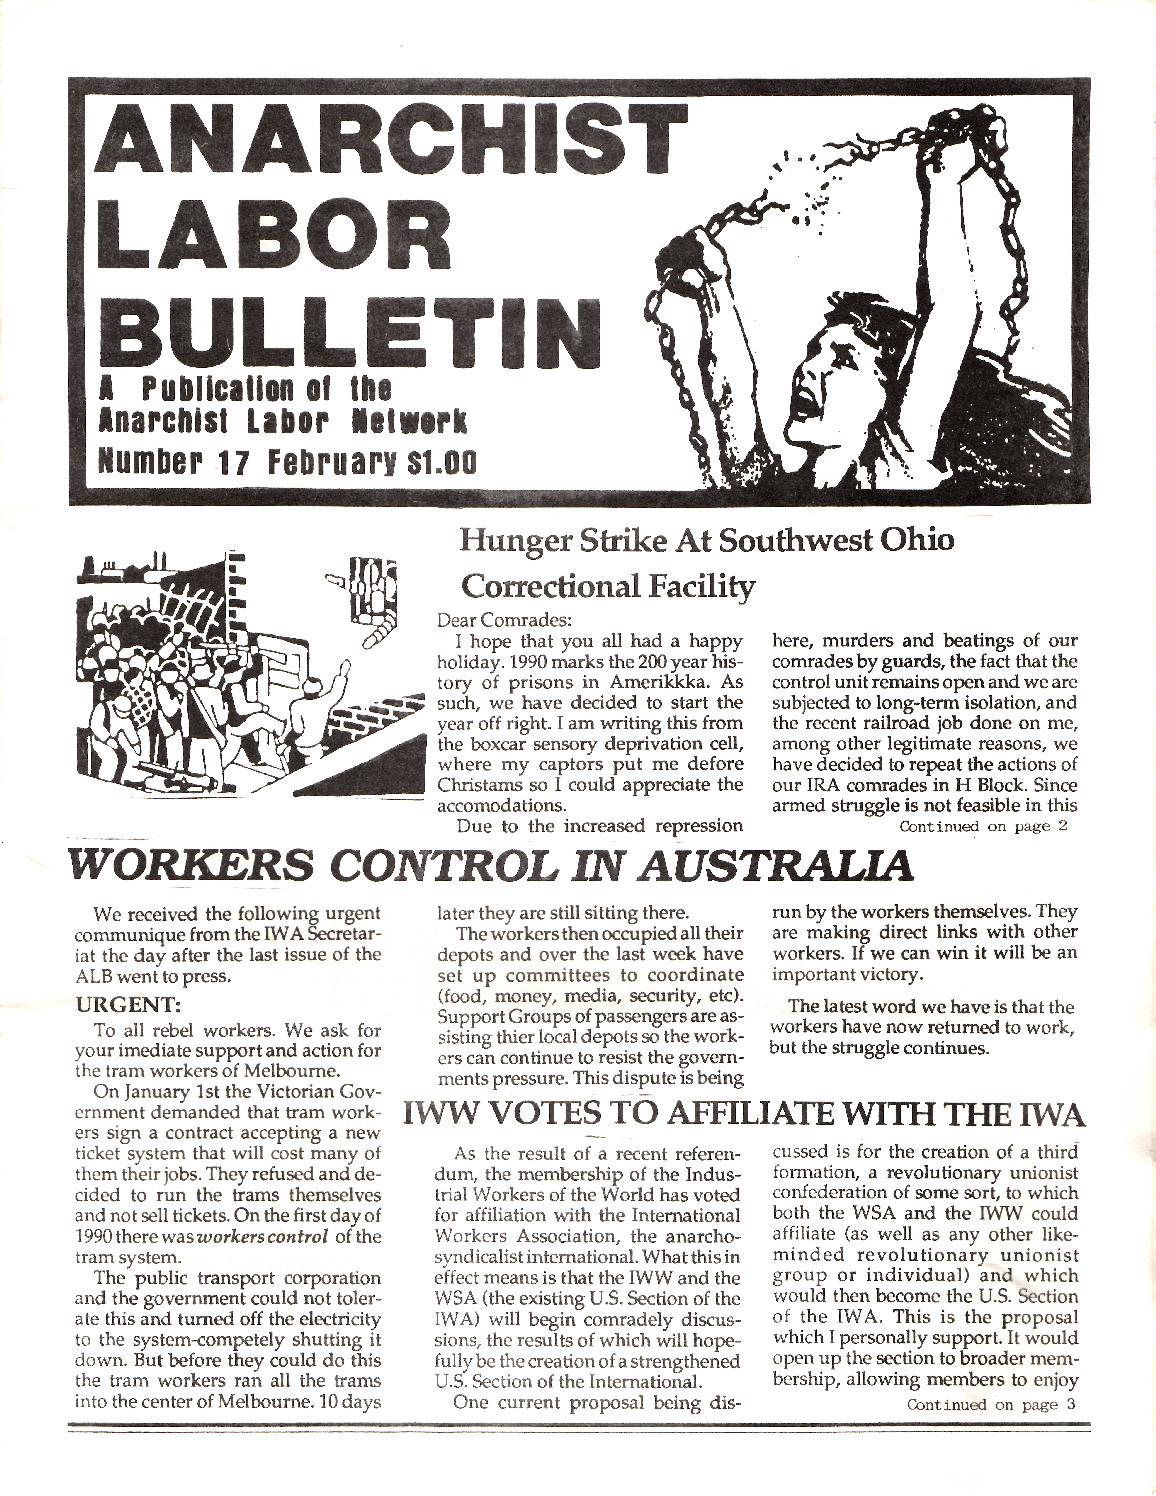 Anarchist Labor Bulletin, Number 17, February 1990 by Arm The Spirit